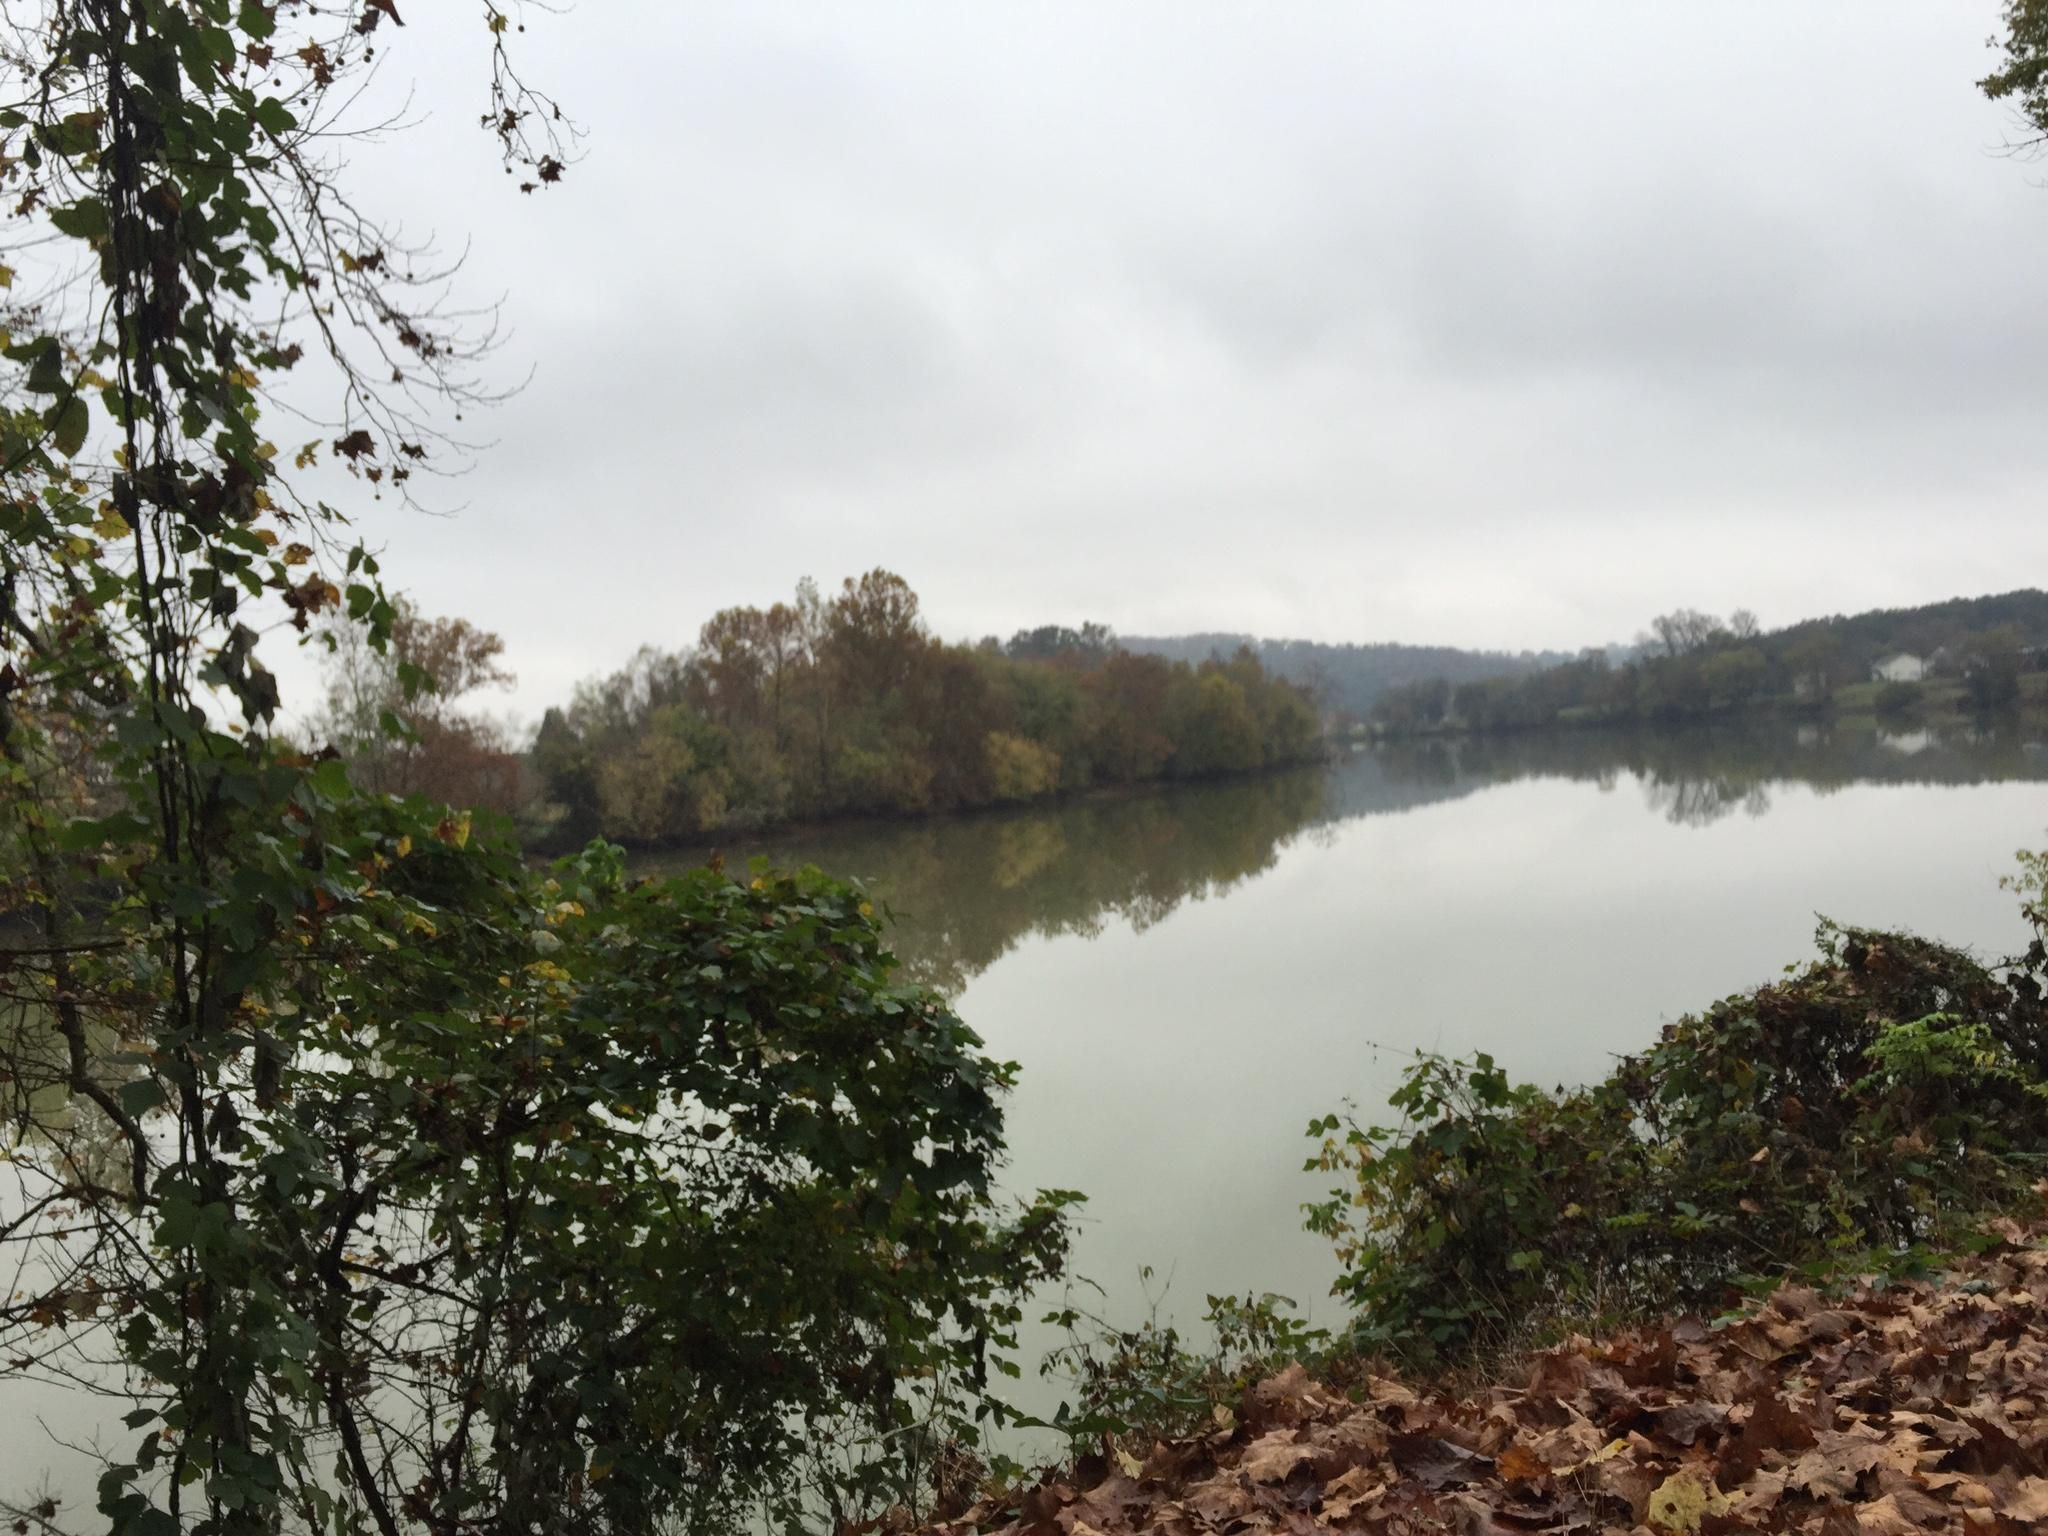 Nearby French Broad River